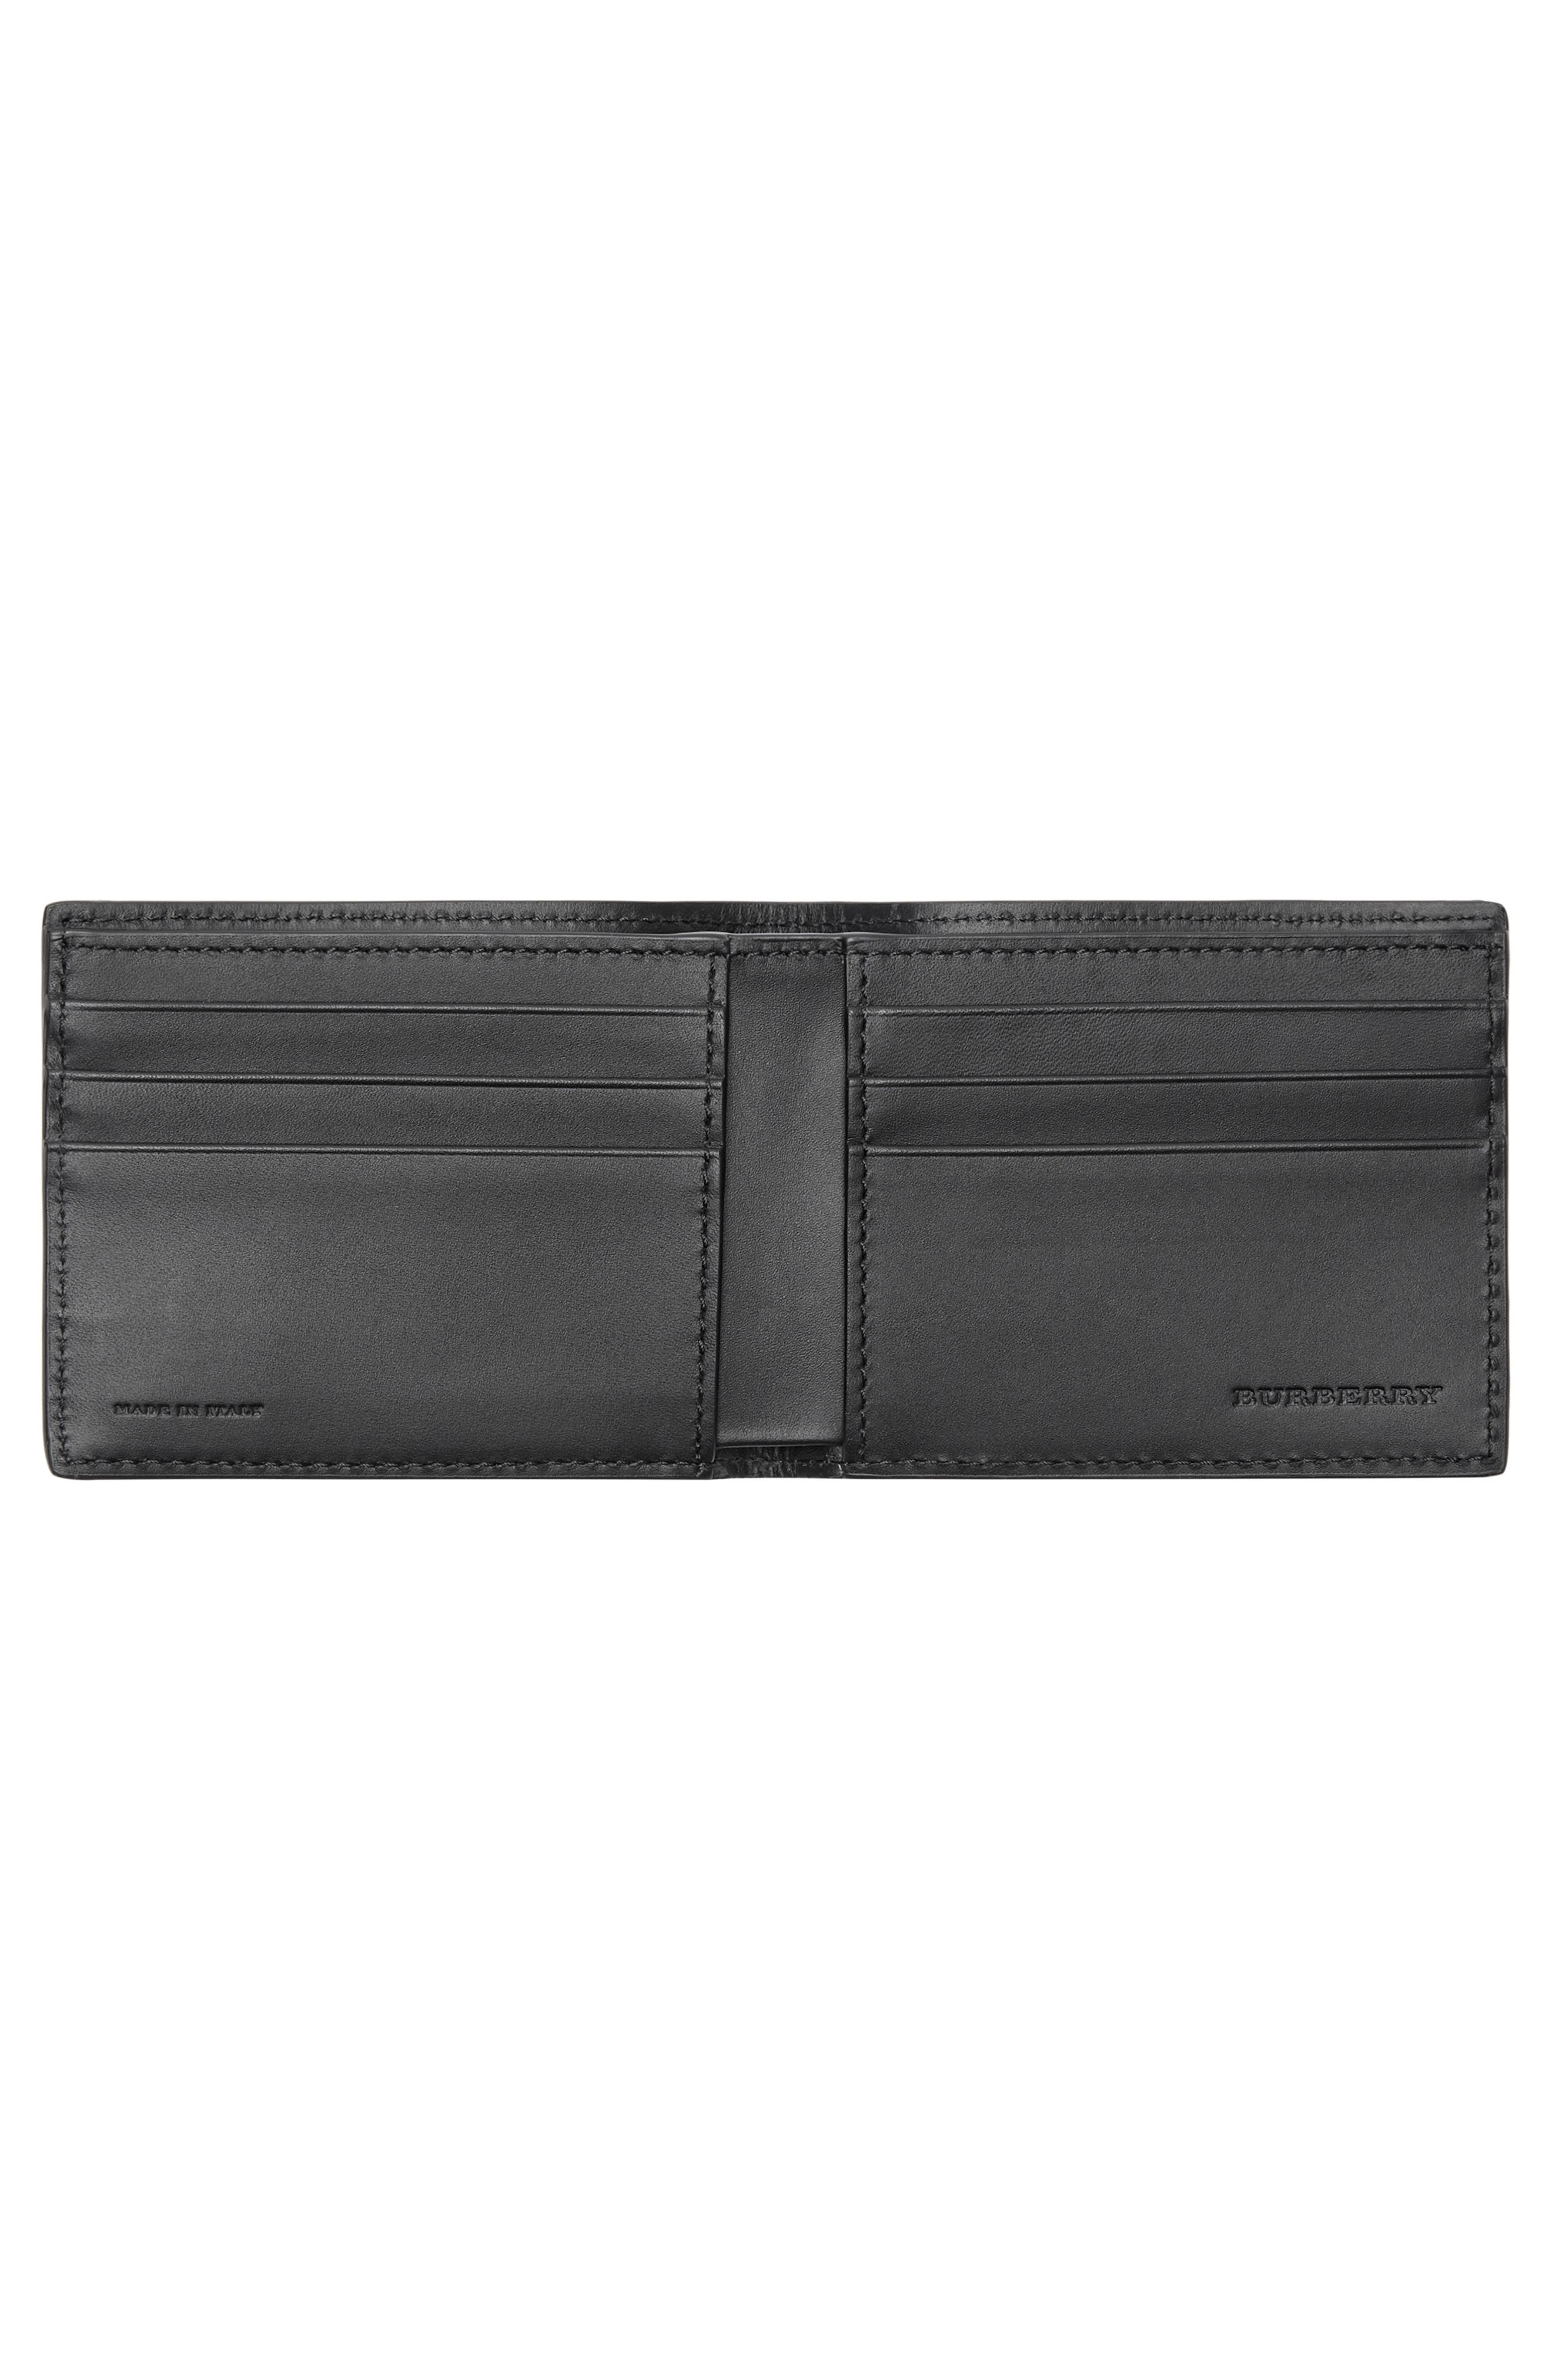 BURBERRY, Leather Bifold Wallet, Alternate thumbnail 2, color, 001